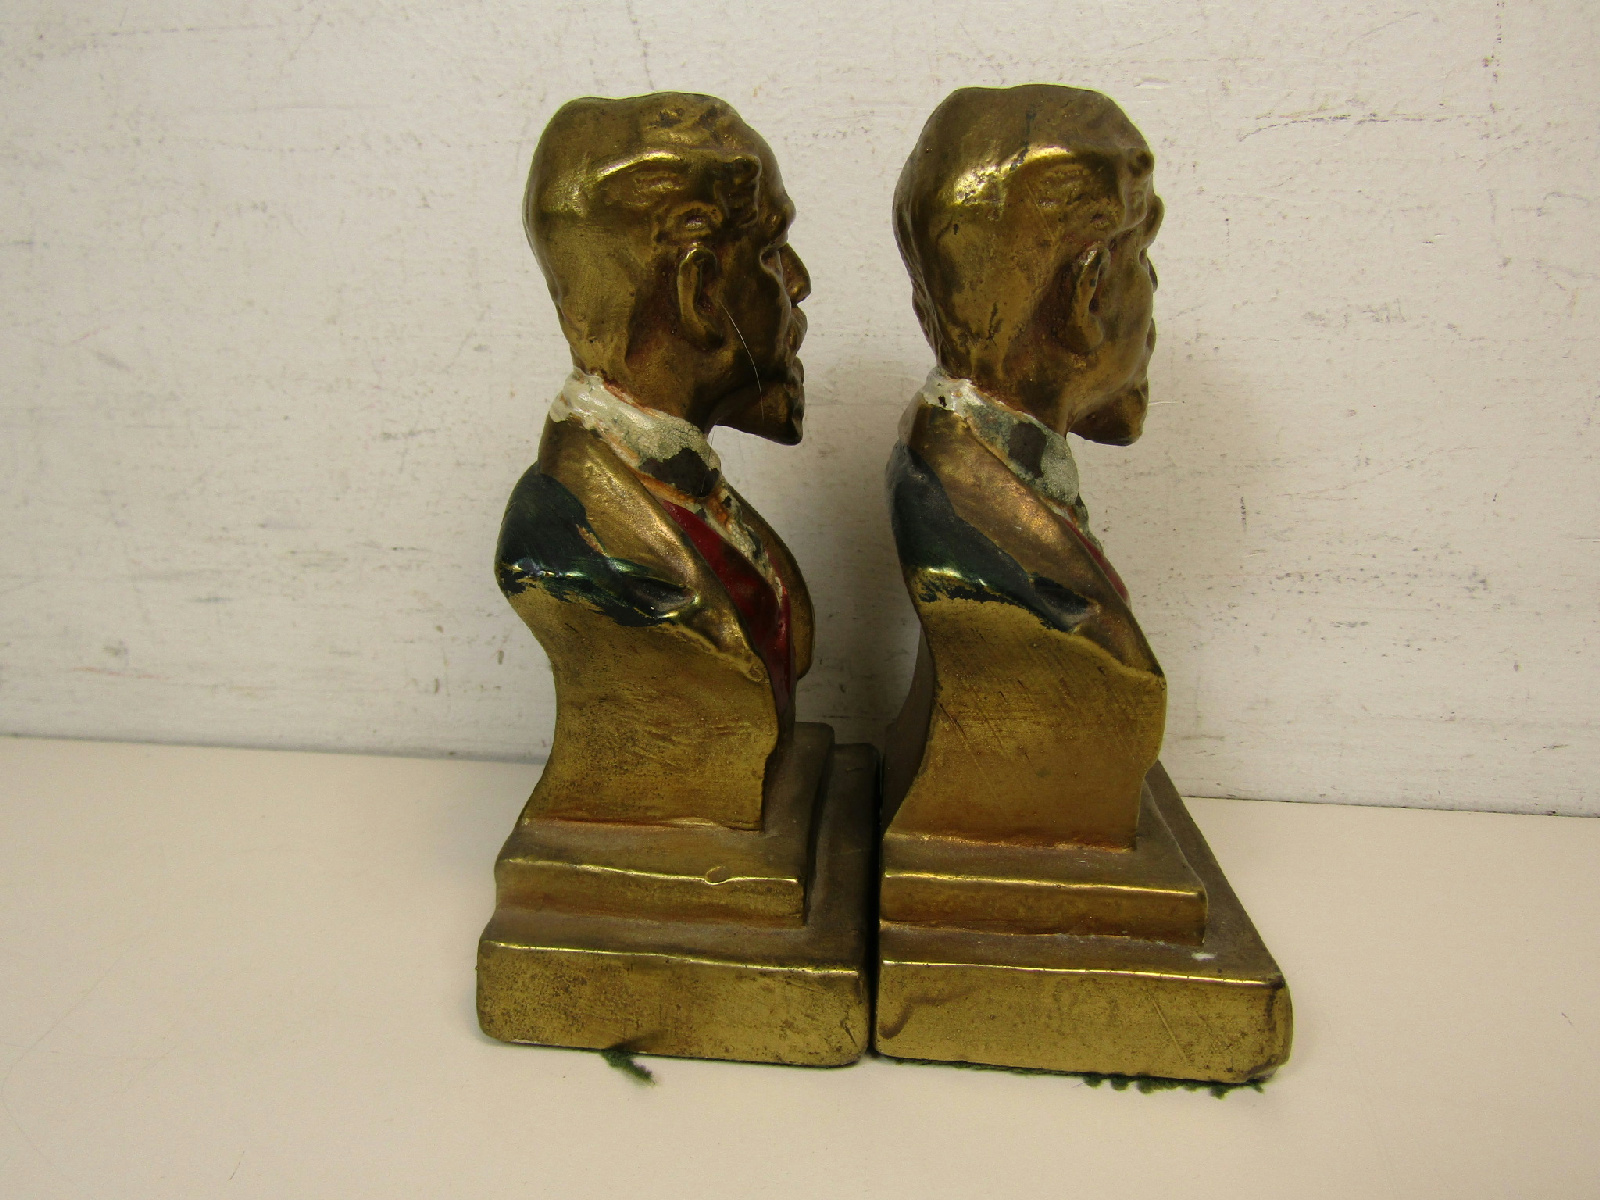 Pair of armor bronze co master craftsmen charles dickens bookends book ends ebay - Armor bronze bookends ...